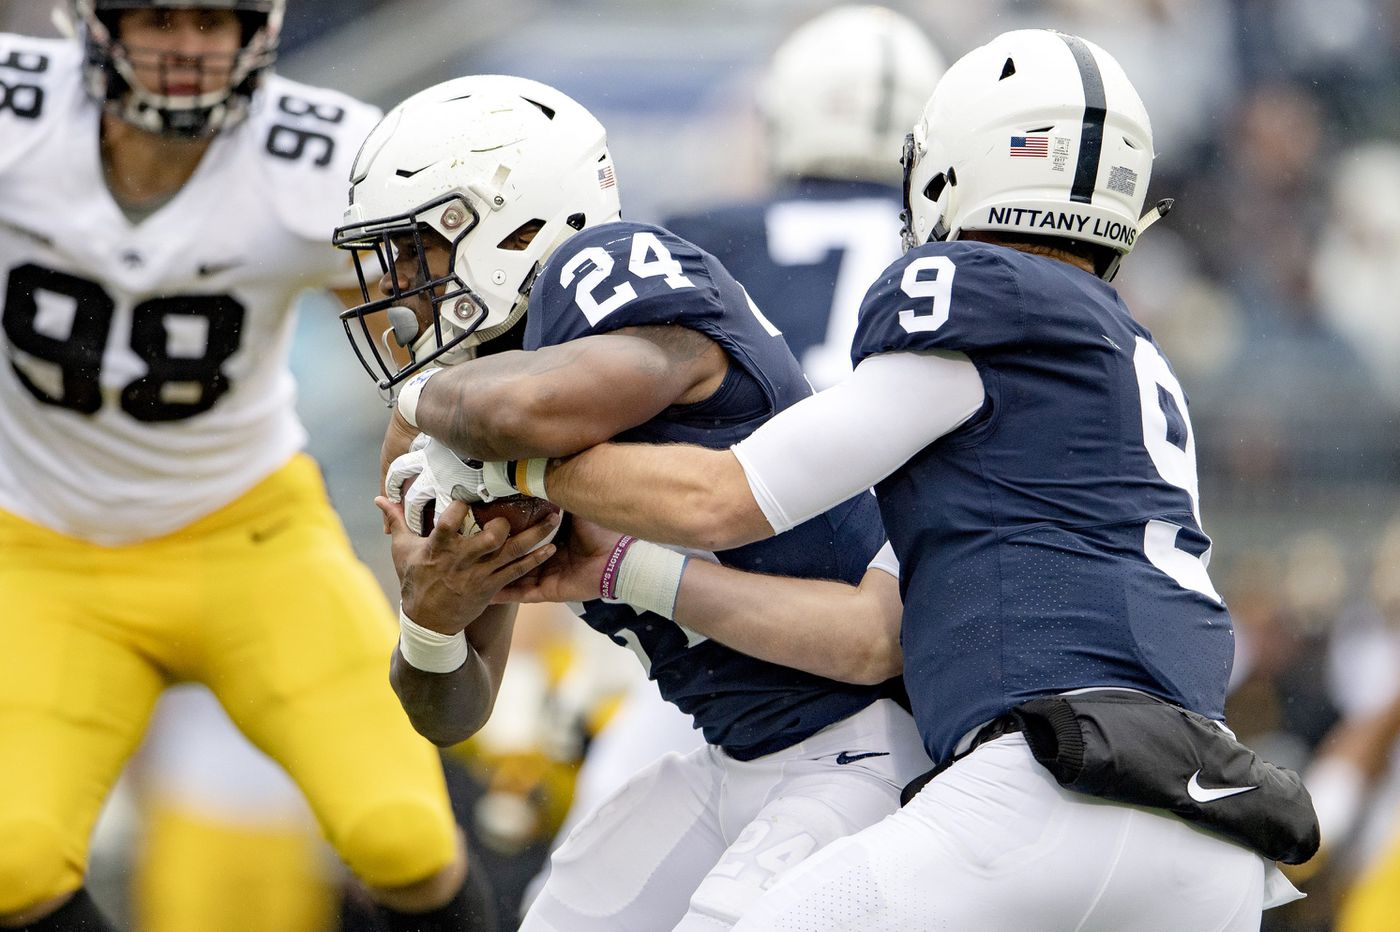 Penn State-Wisconsin prediction: One more bounceback for Lions?